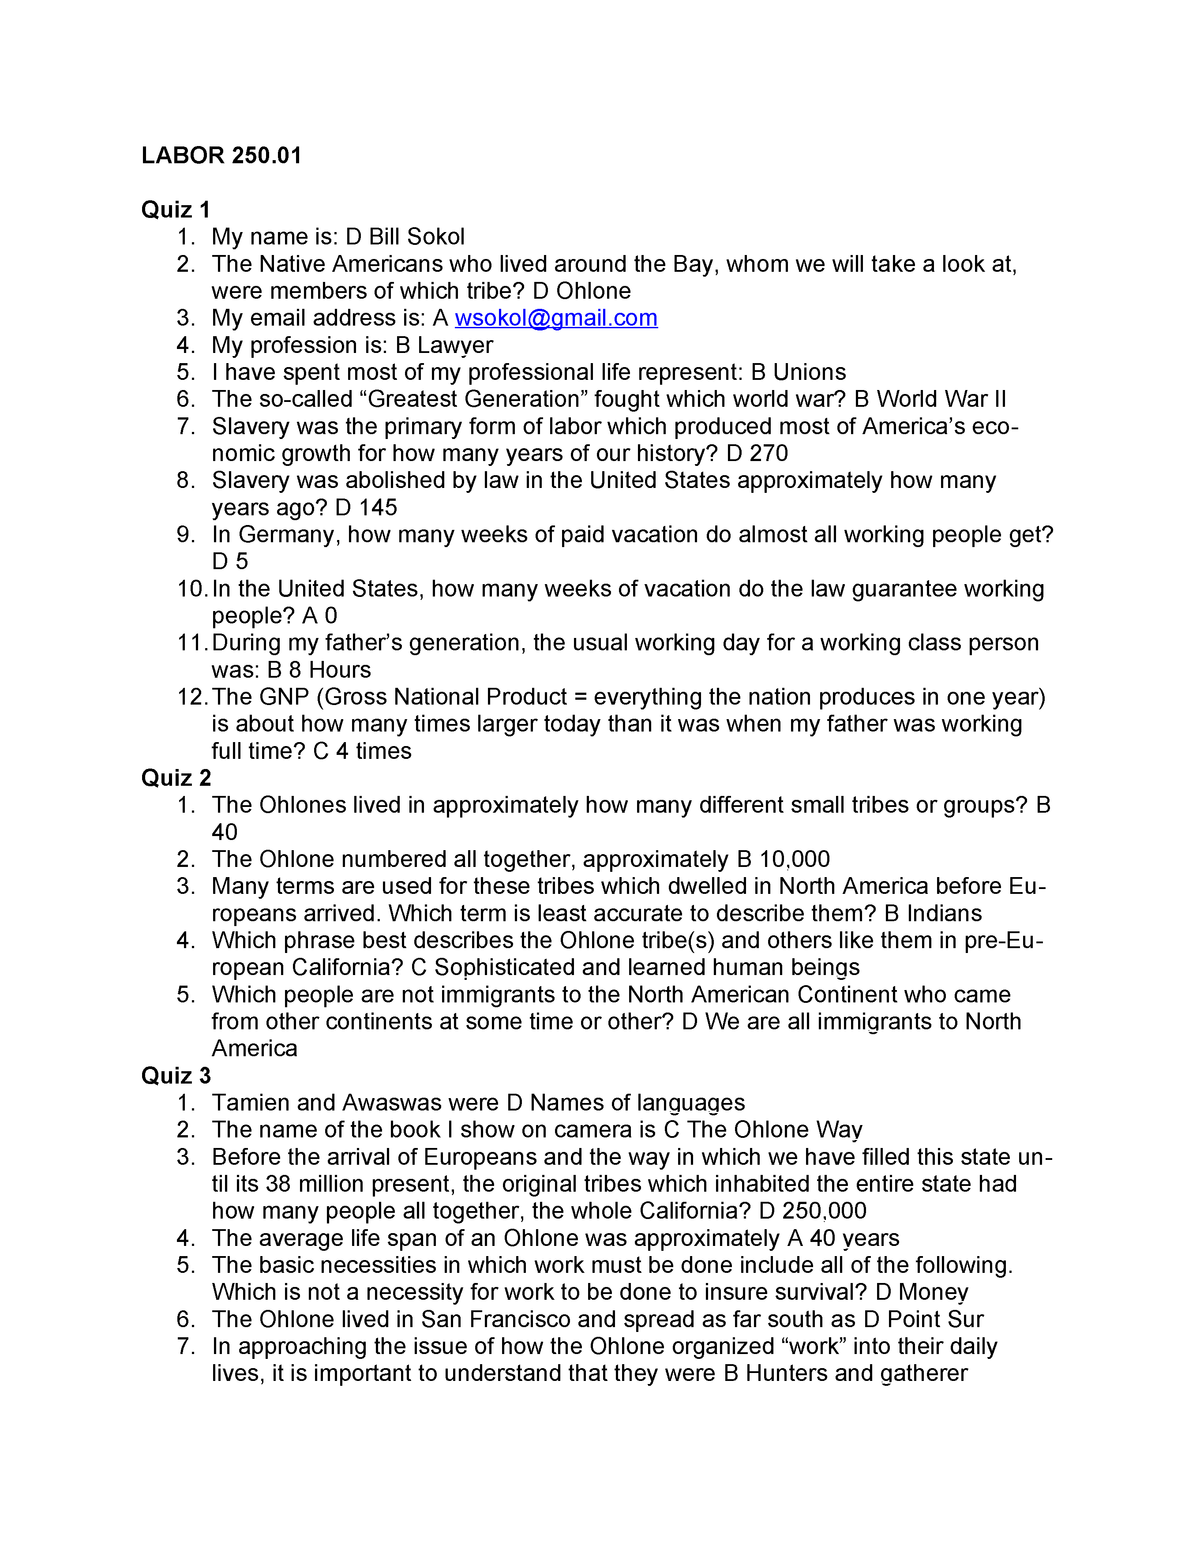 Exam February 14 Spring 2016, questions and answers - SFSU